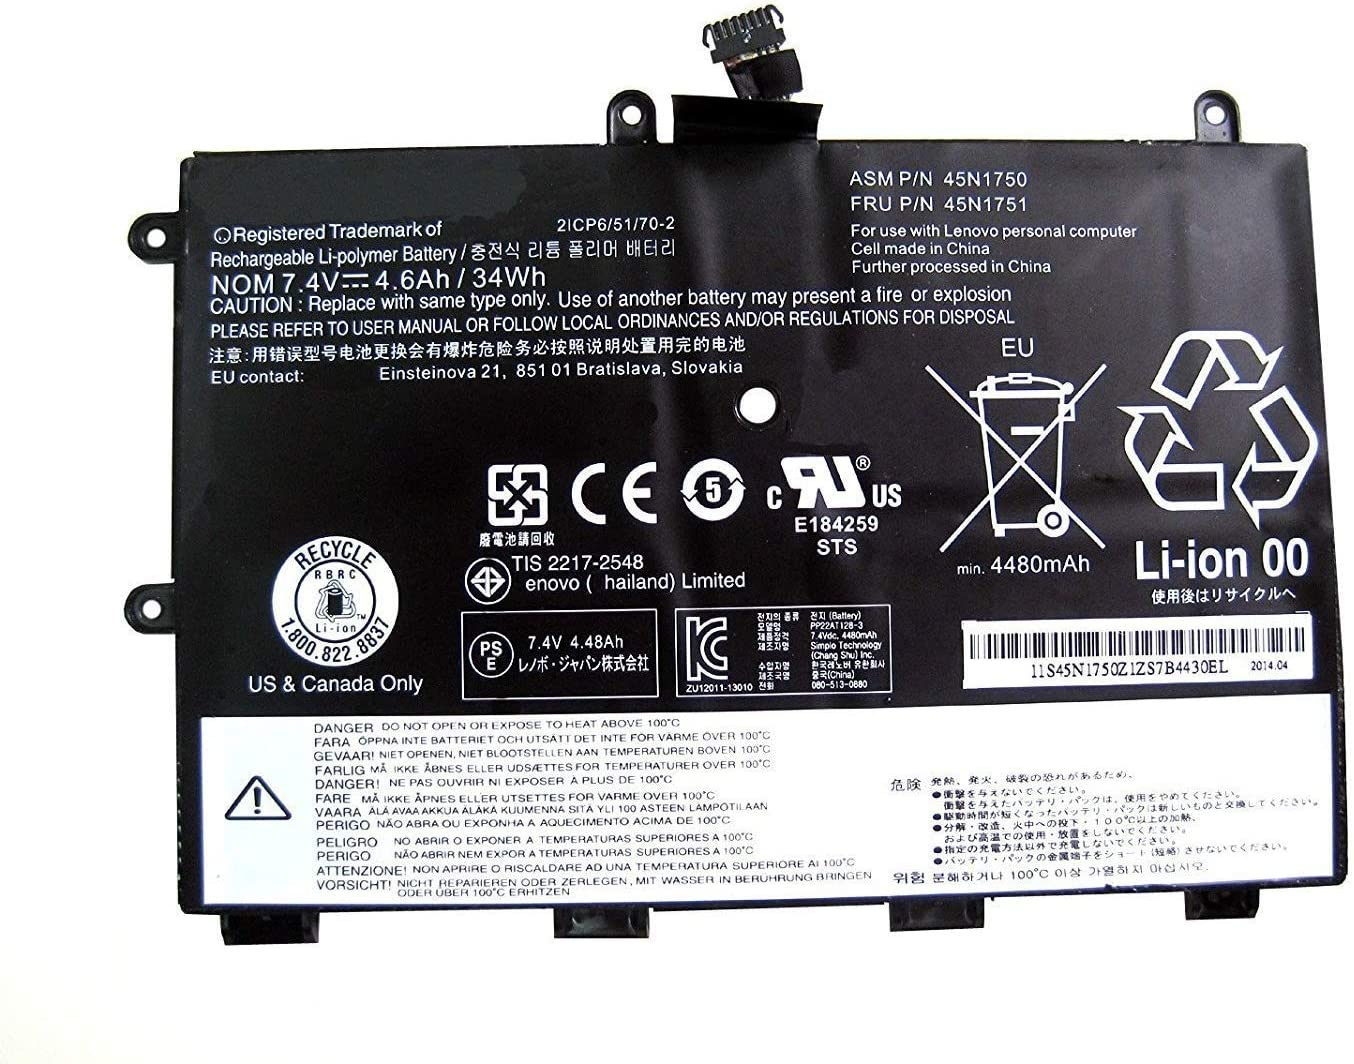 Ding 45N1748 Replacement Battery Compatible with Lenovo ThinkPad Yoga 11e 45N1748 45N1751 45N1749 45N1750(7.4V 34Wh 4600mAh)